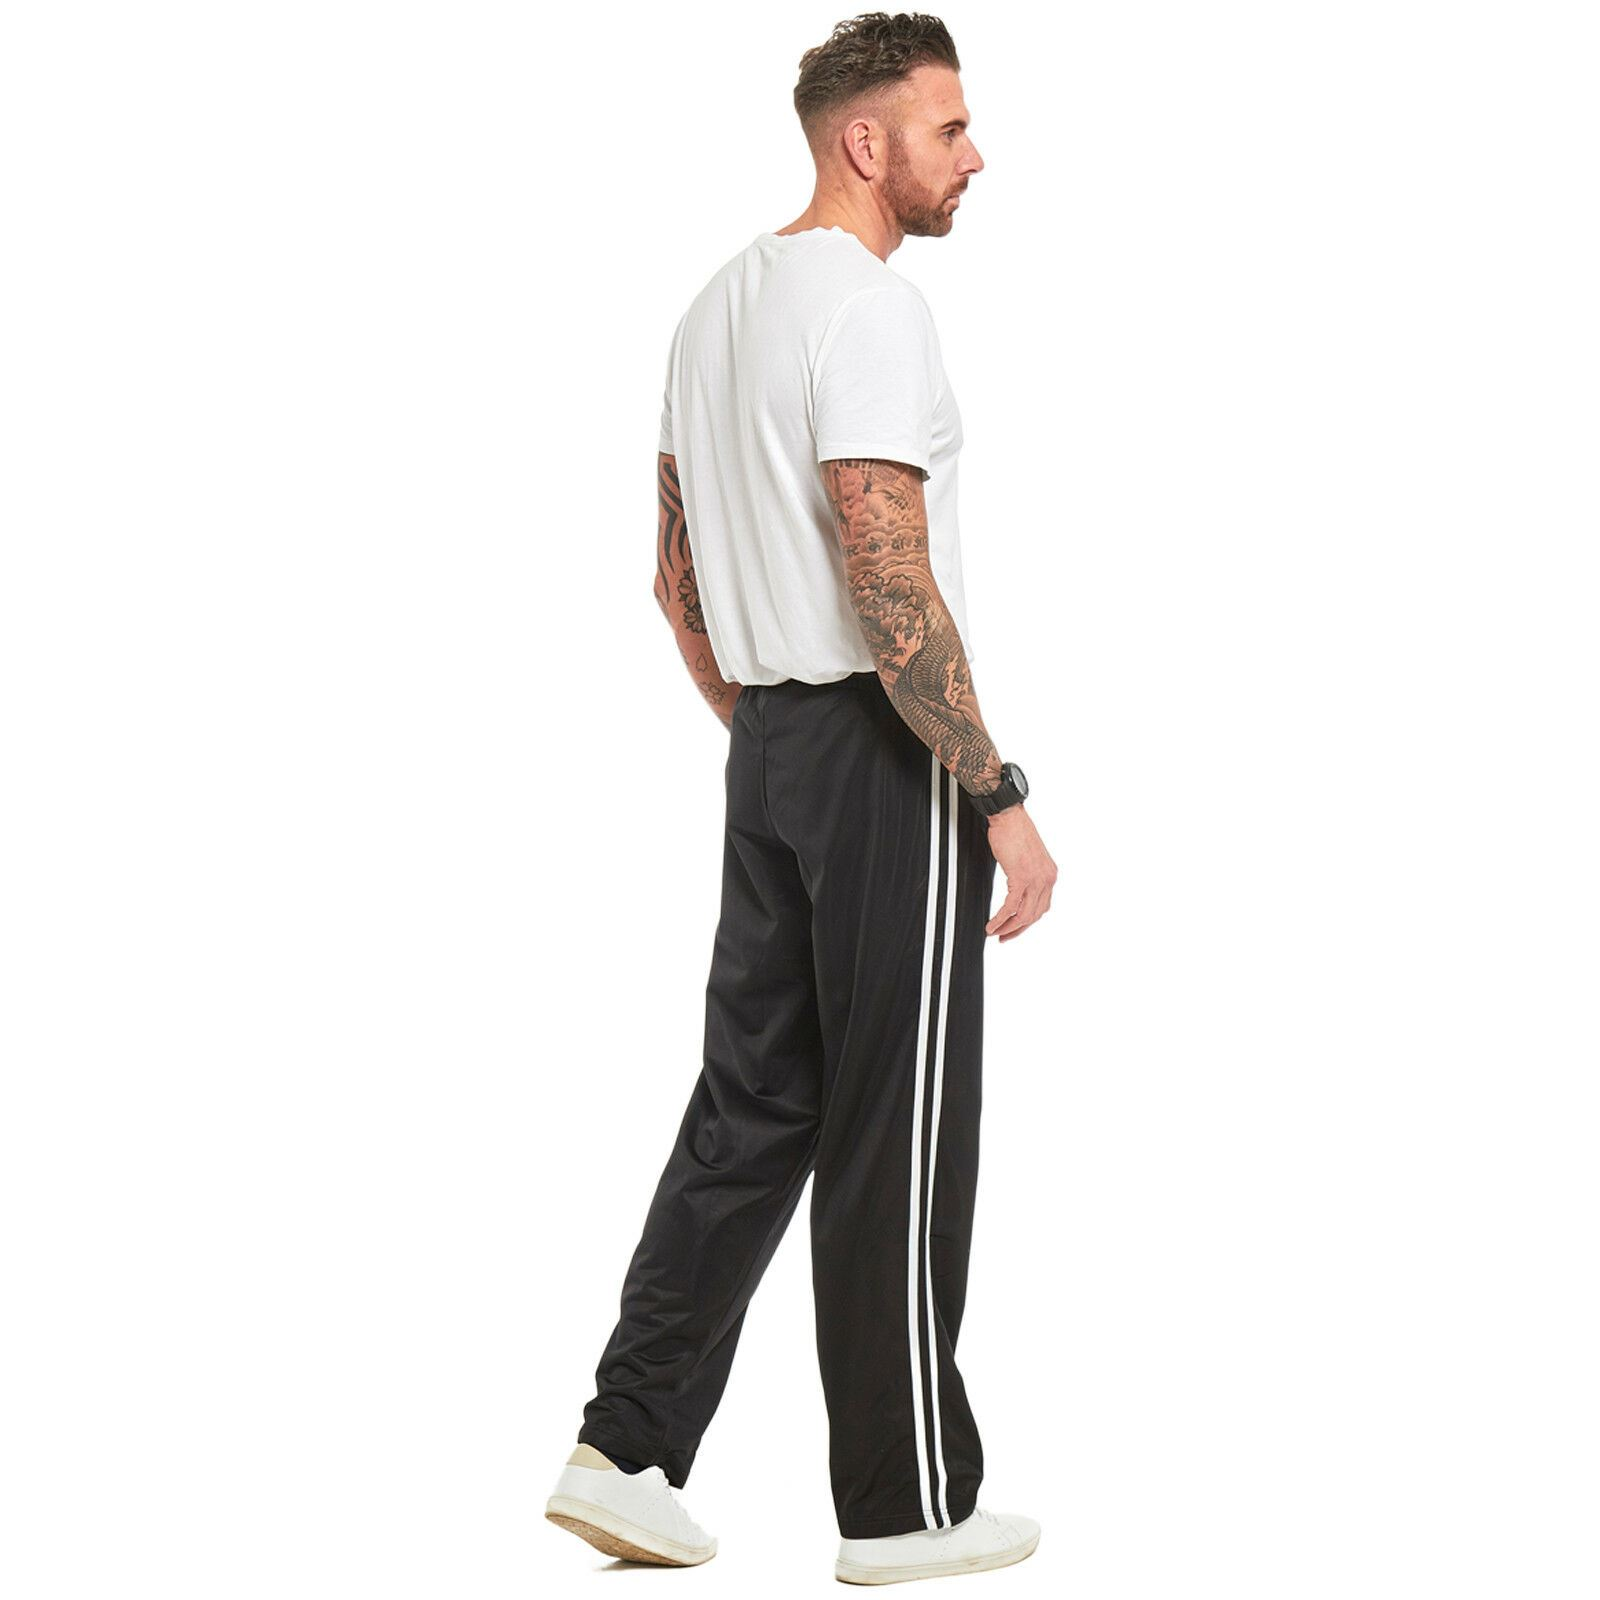 Mens-Tracksuit-Joggers-Jogging-Striped-Gym-Sports-Silky-Bottoms-Trousers-Pants thumbnail 10